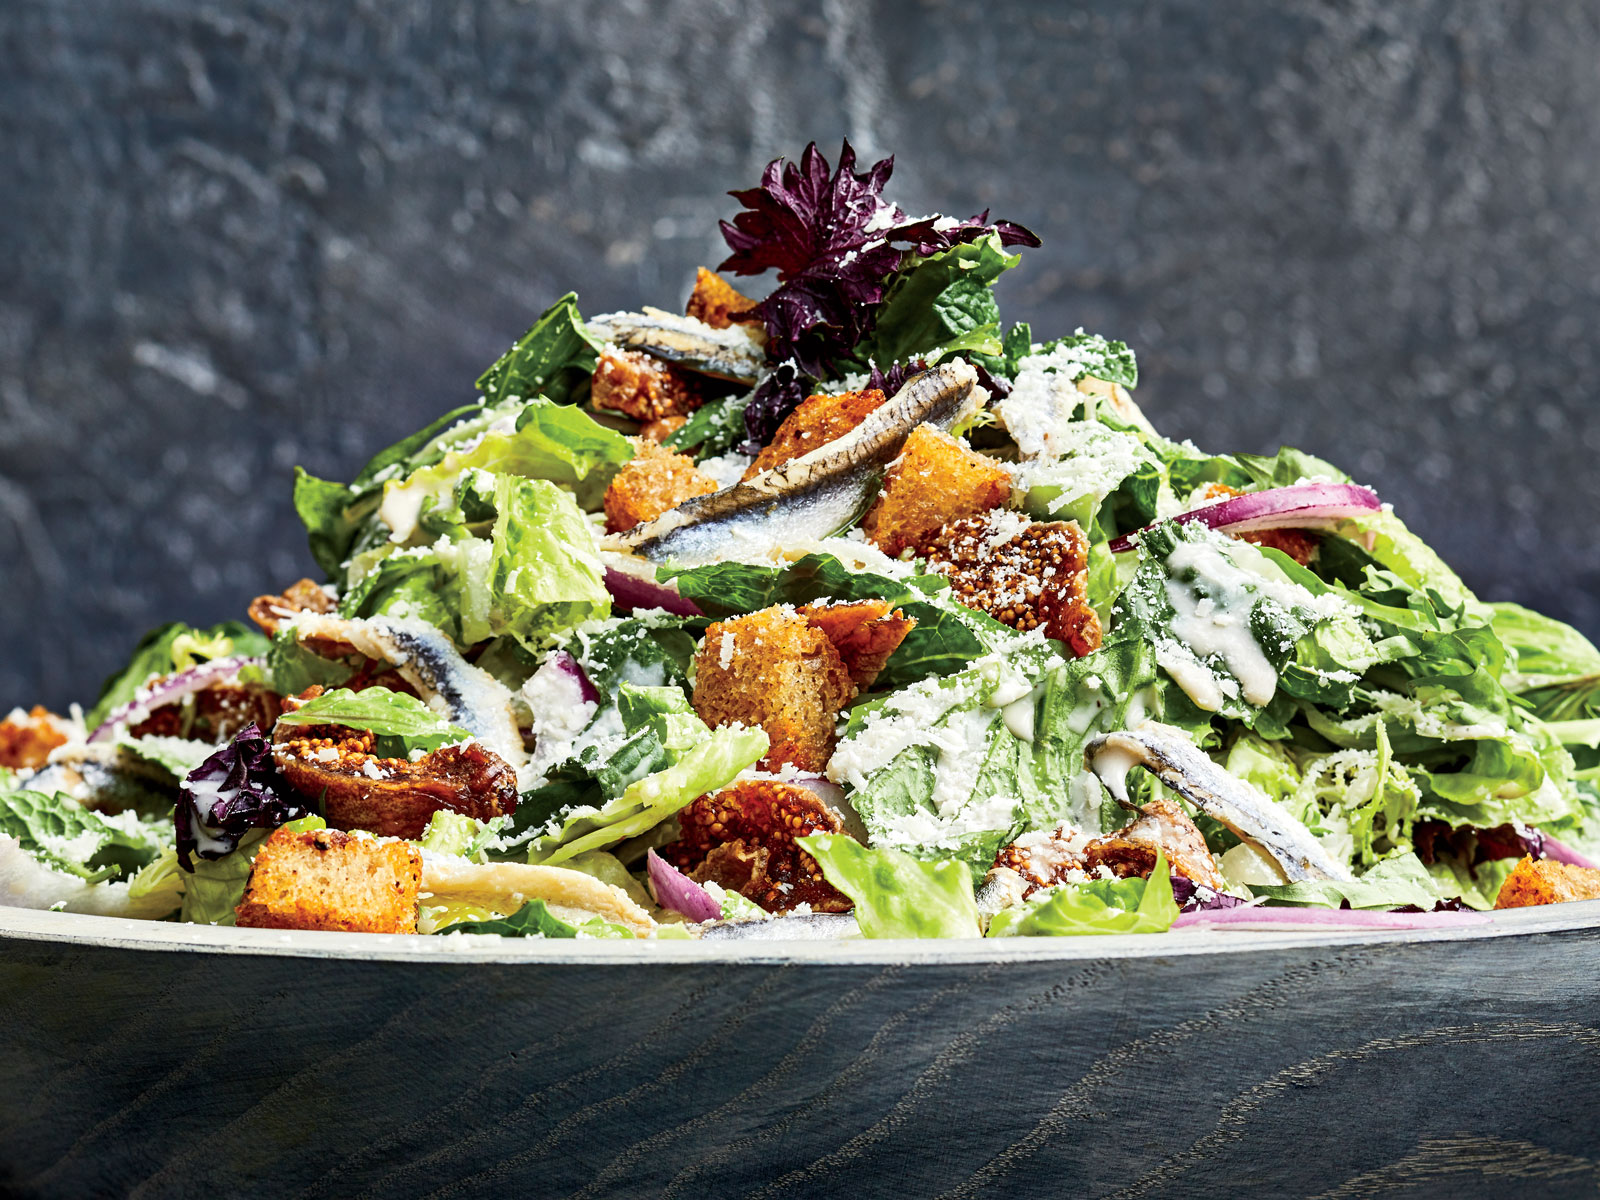 Vietnamese Caesar Salad with Anchovy Croutons